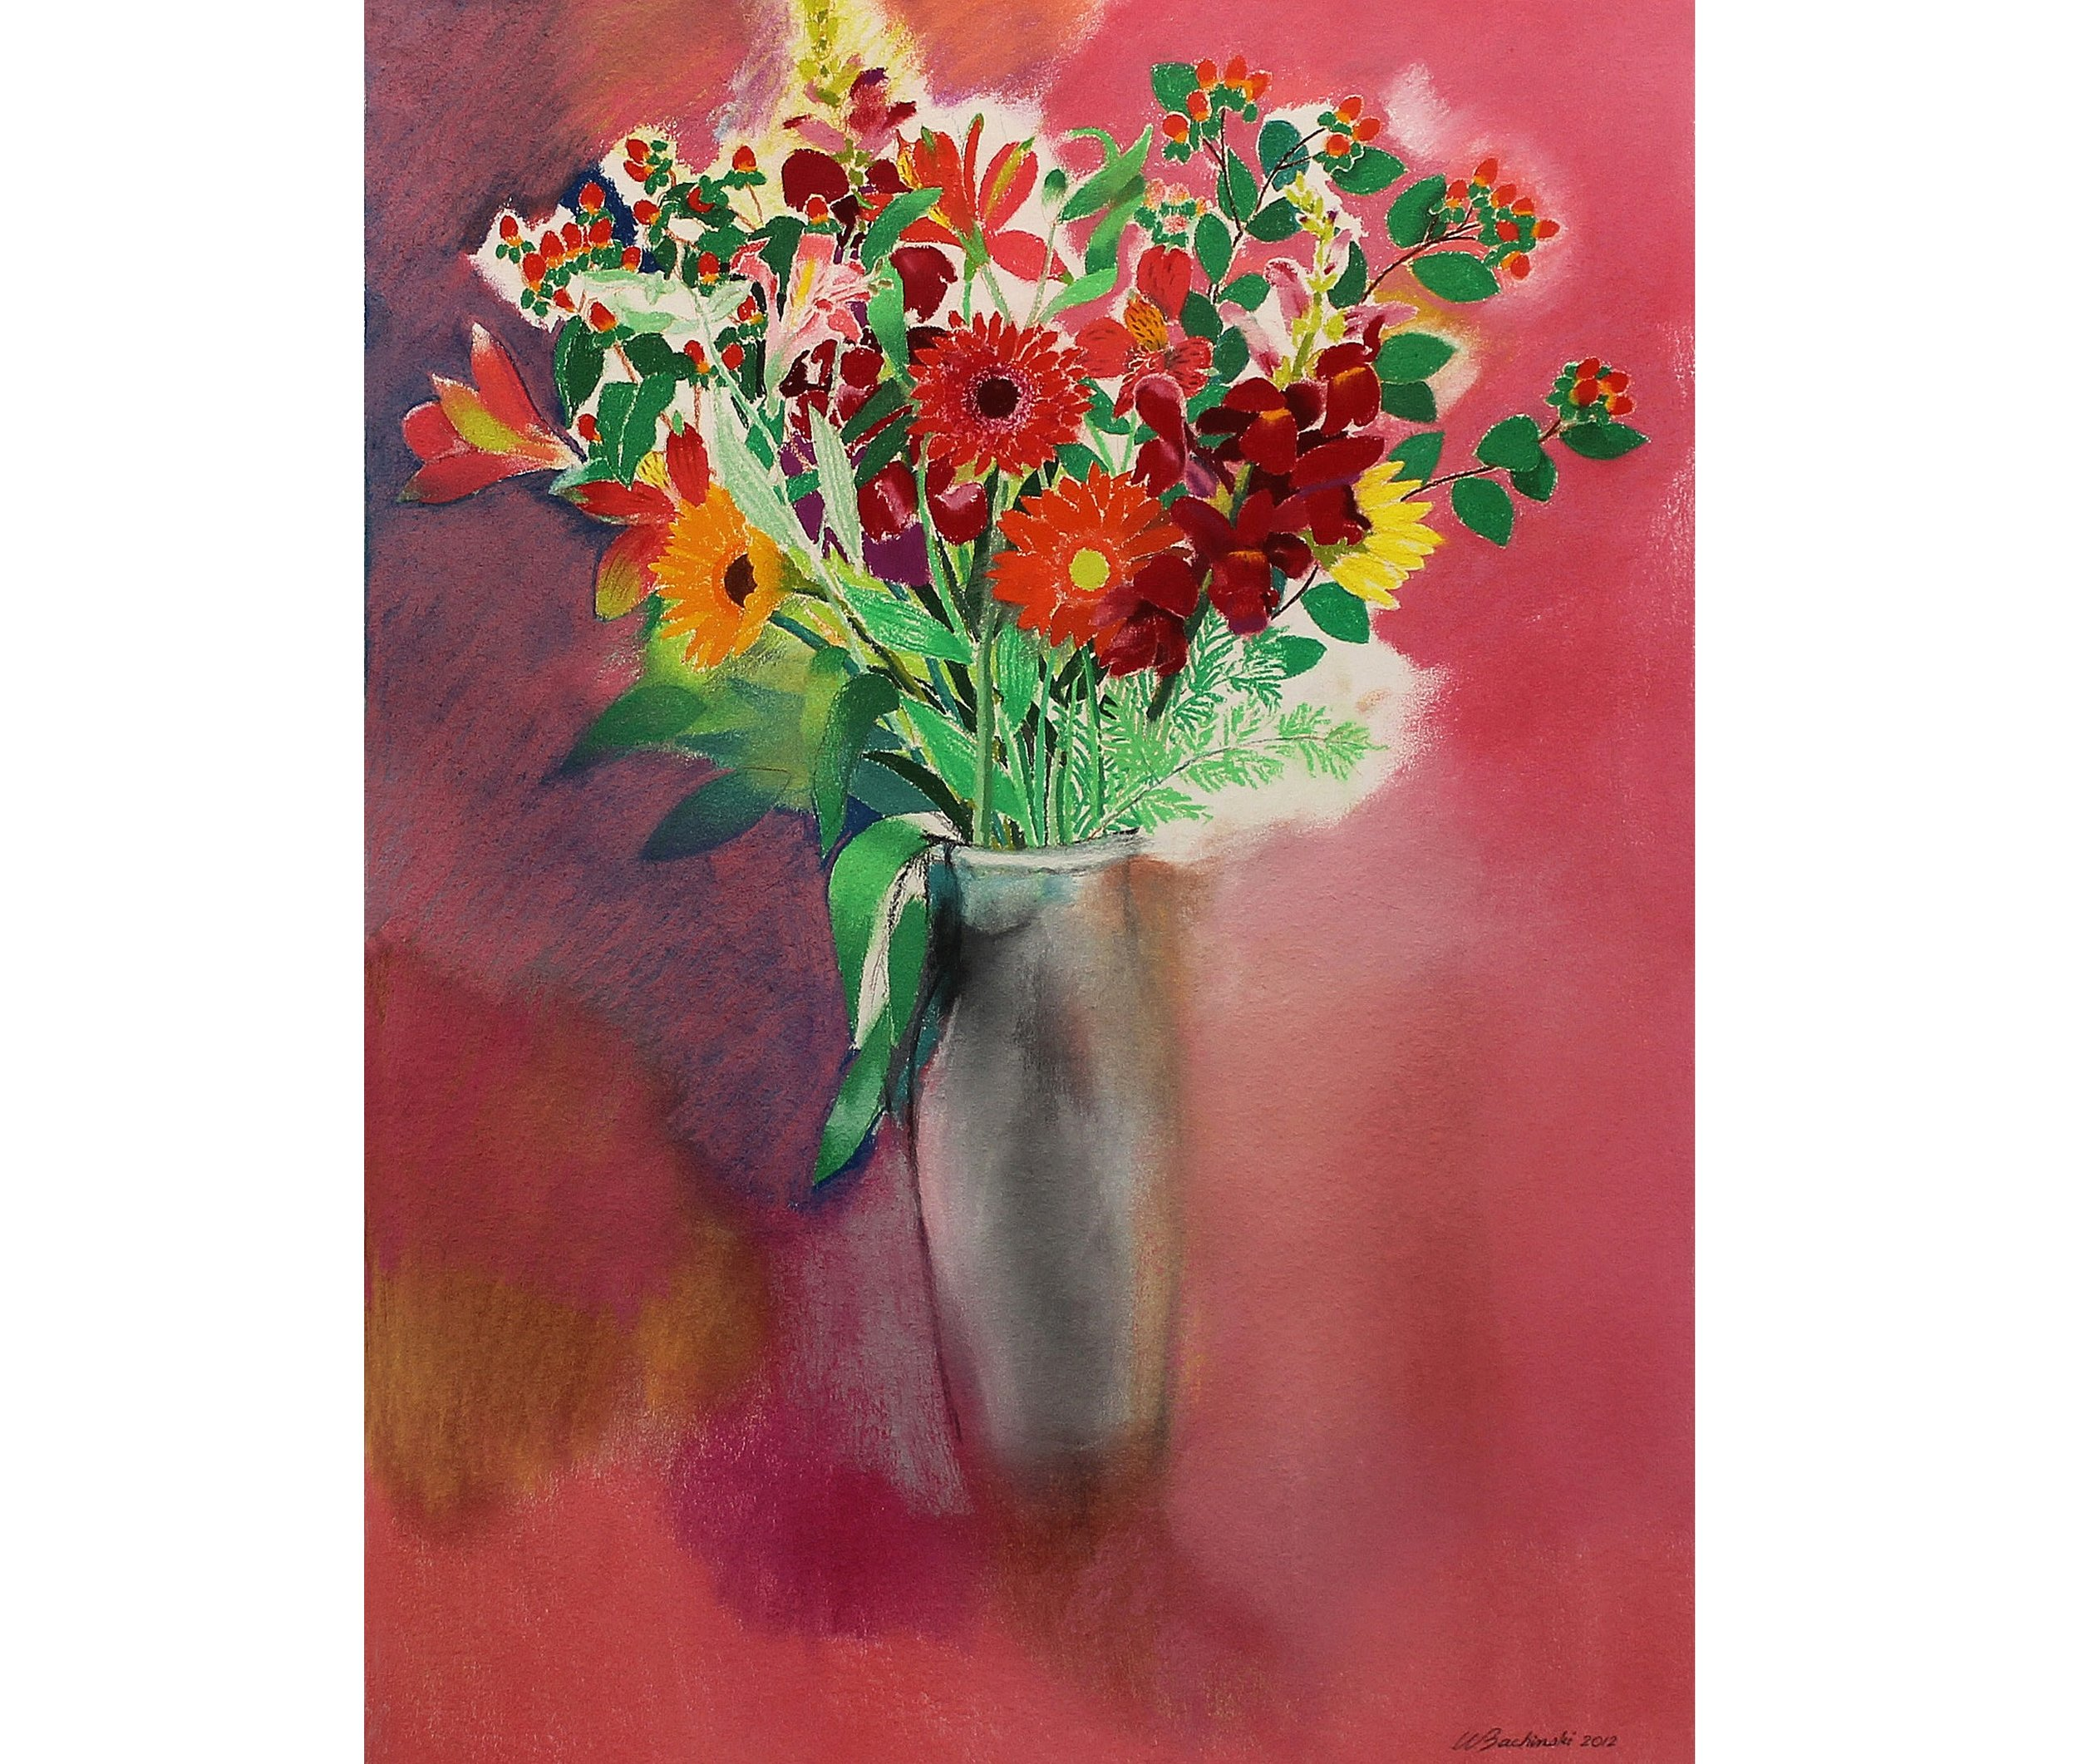 Bouquet of Flowers (Gray Vase, Rose Ground), 2012, 27.5 x 20.5 inches, Pastel on paper